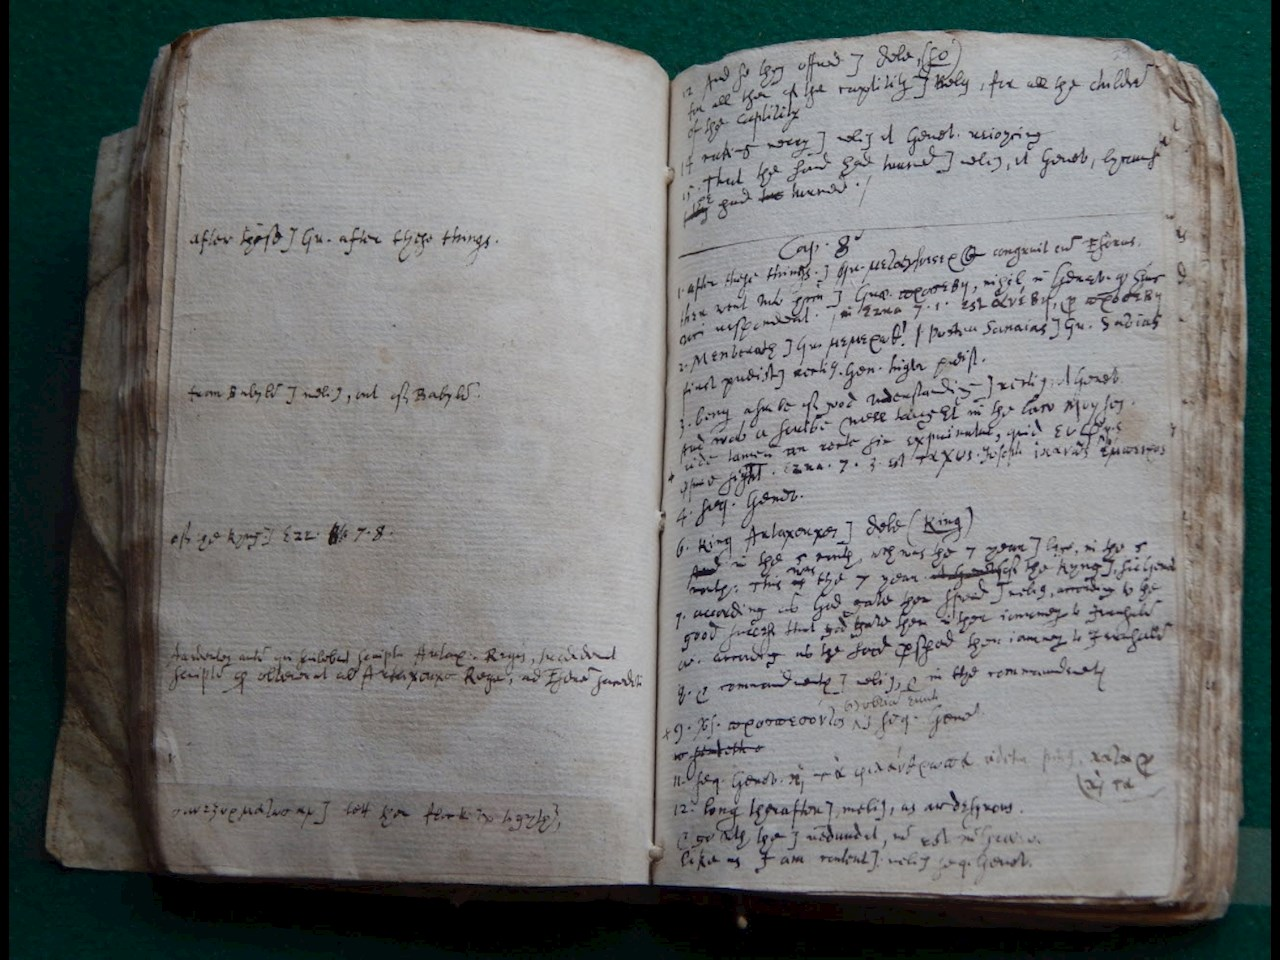 Pages from Samuel Ward's translation for part of the King James Bible